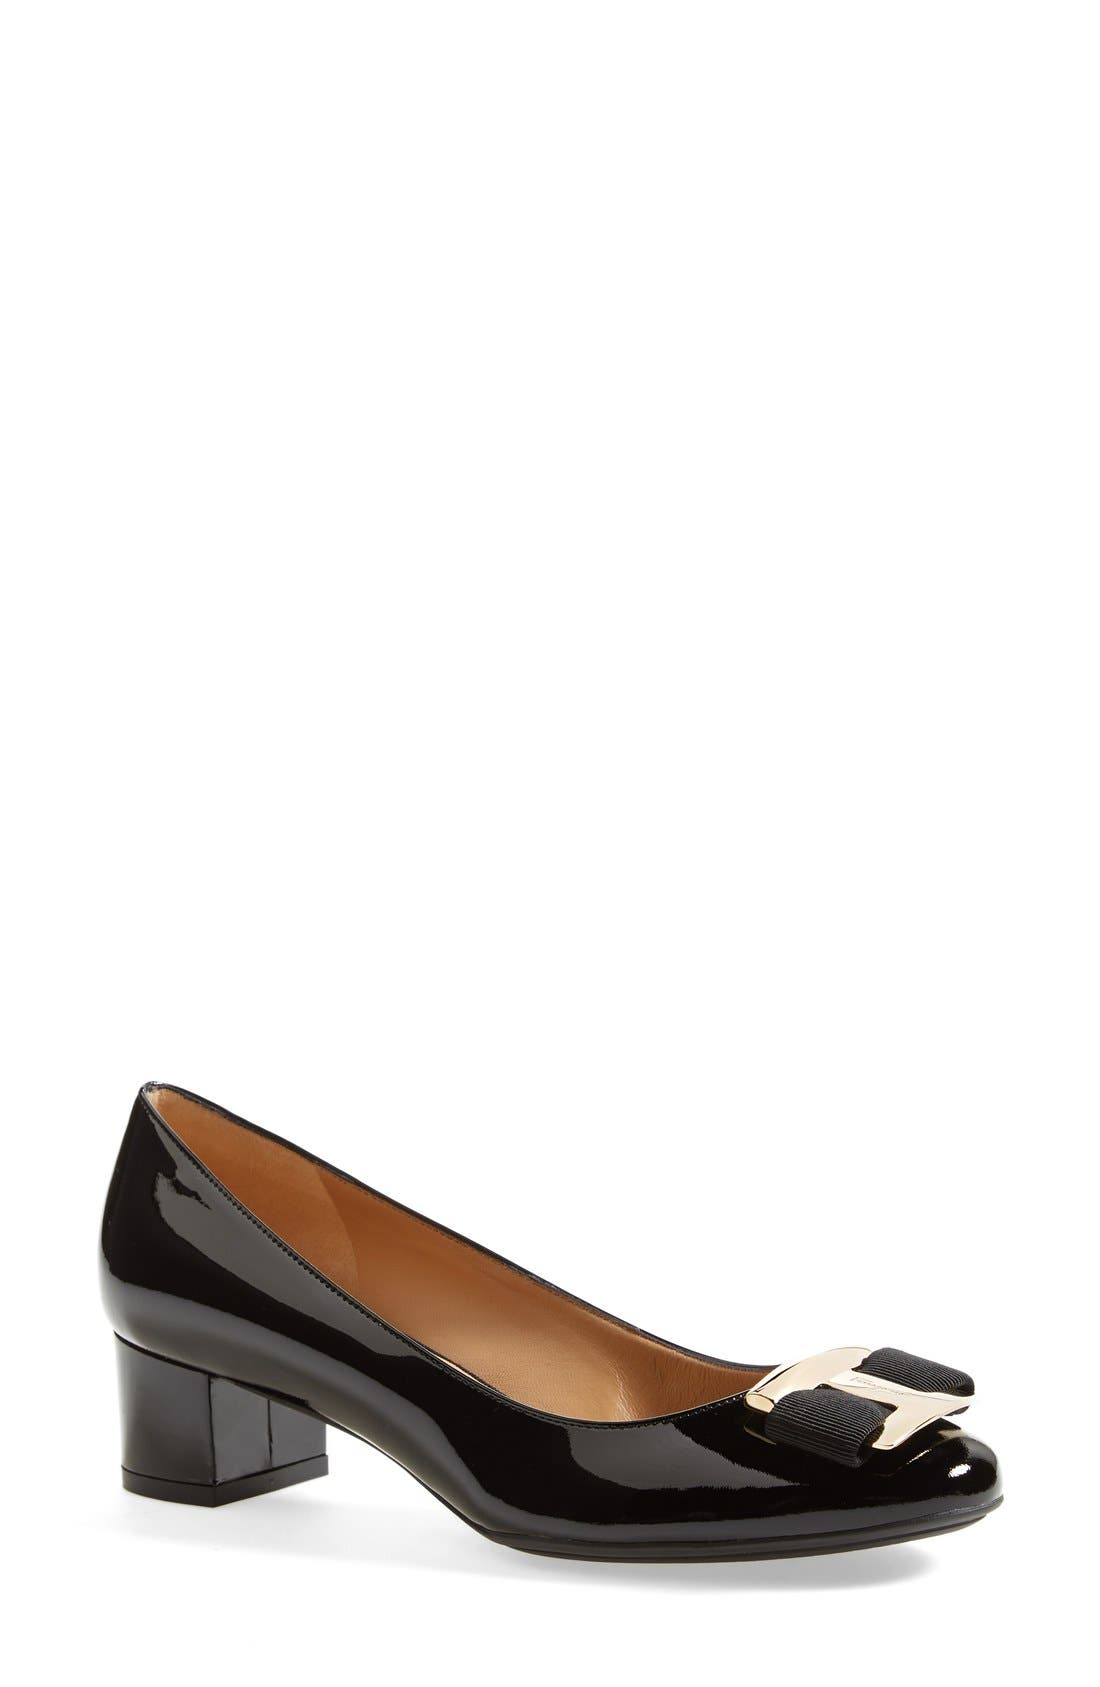 Main Image - Salvatore Ferragamo 'Ninna' Patent Leather Pump (Women)